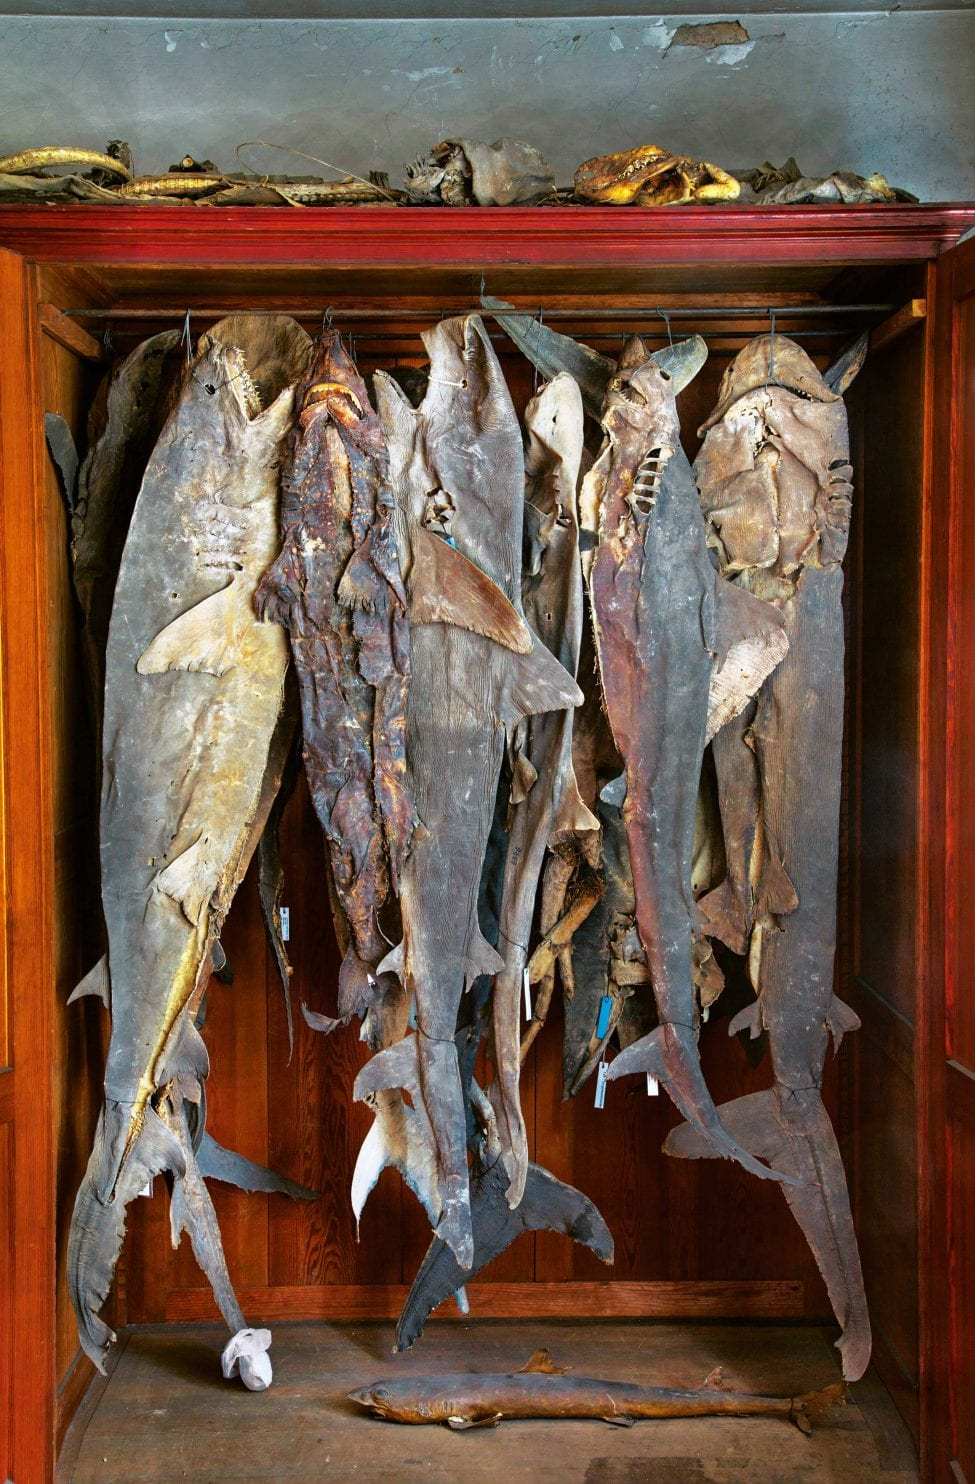 'Type specimens', like these shark skins from the 18th and 19th centuries in Berlin, Germany, are often samples stored in natural history museums. They form the basis on which taxonomists describe and name species.<br /> Photo by Gerd Ludwig | National Geographic Image Collection